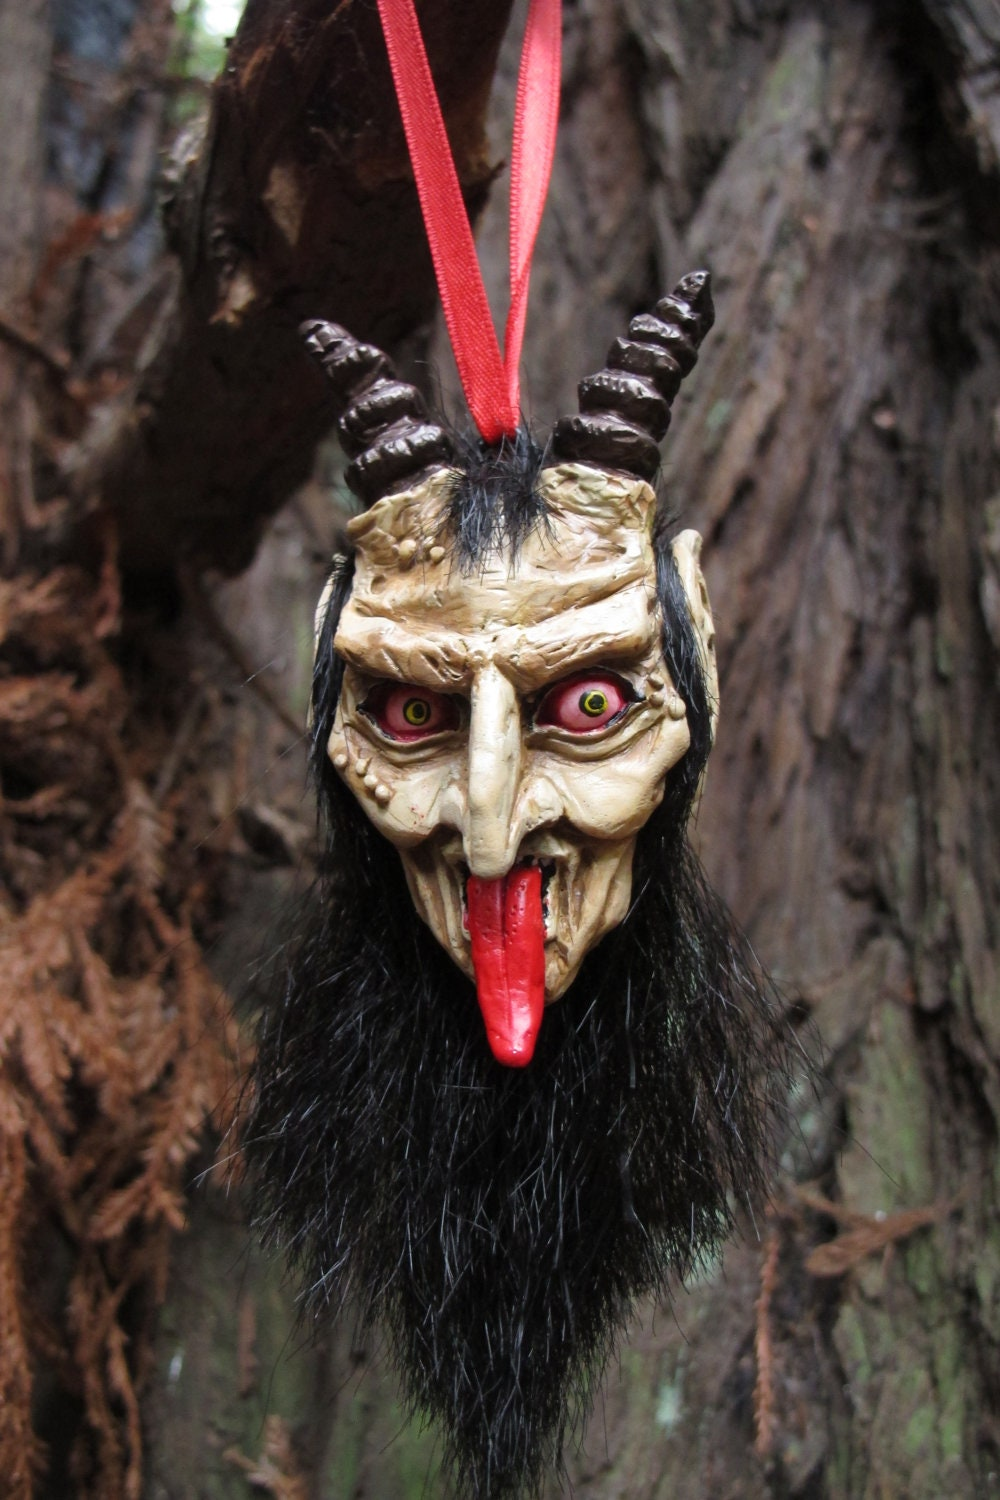 Items similar to Krampus Ornament, Pale on Etsy